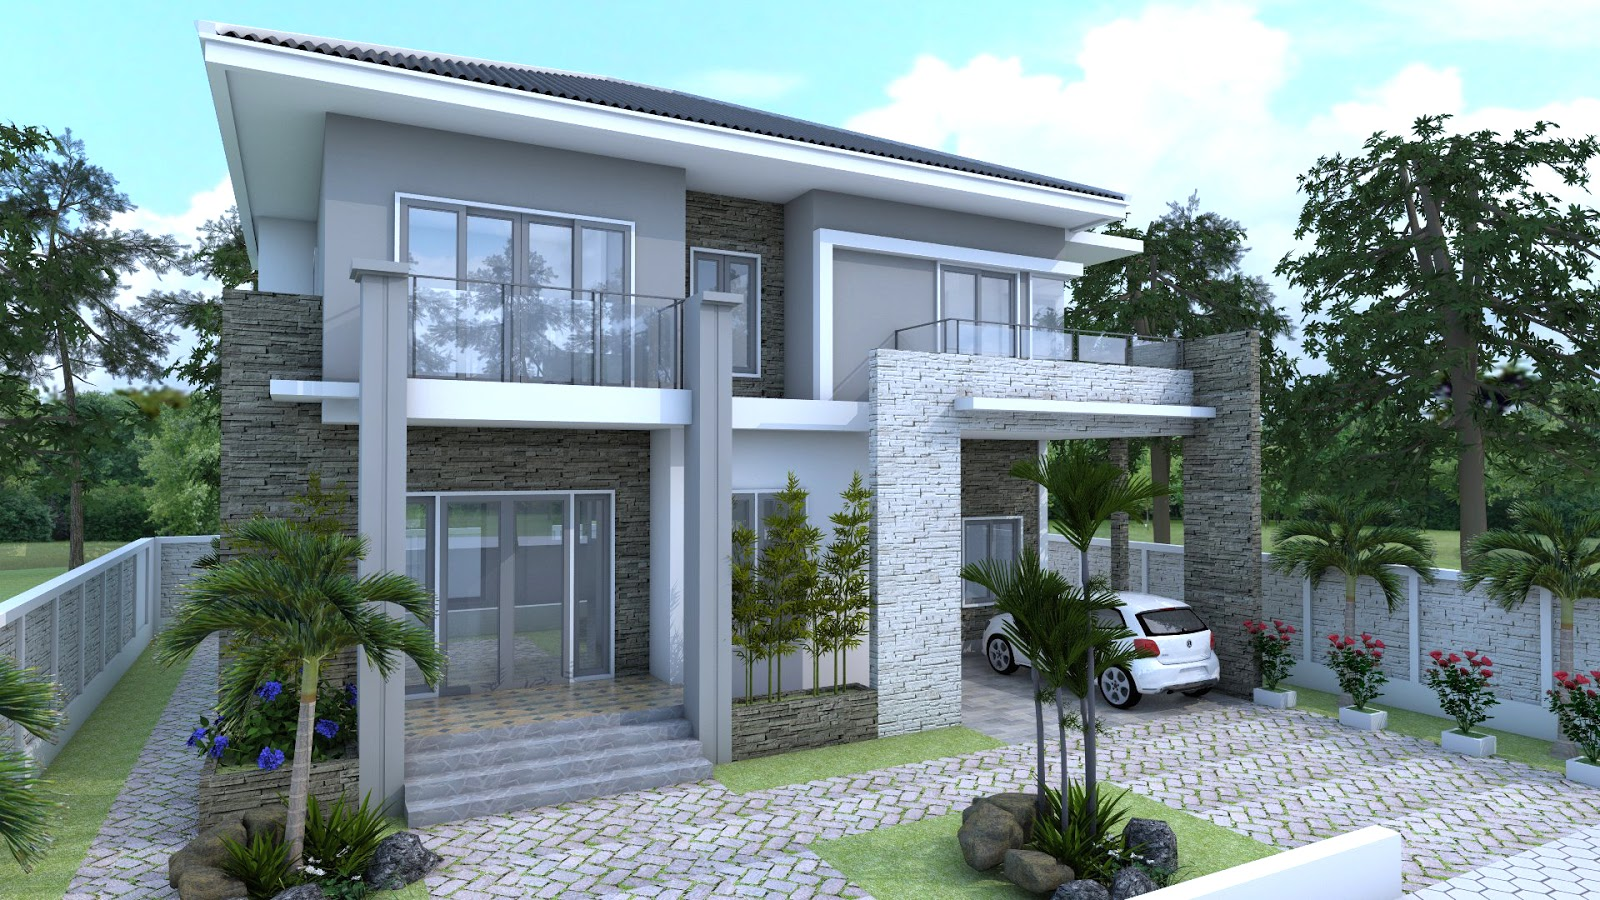 10 Best House Plans Of August 2017: SketchUp Modern Home 10x12m.